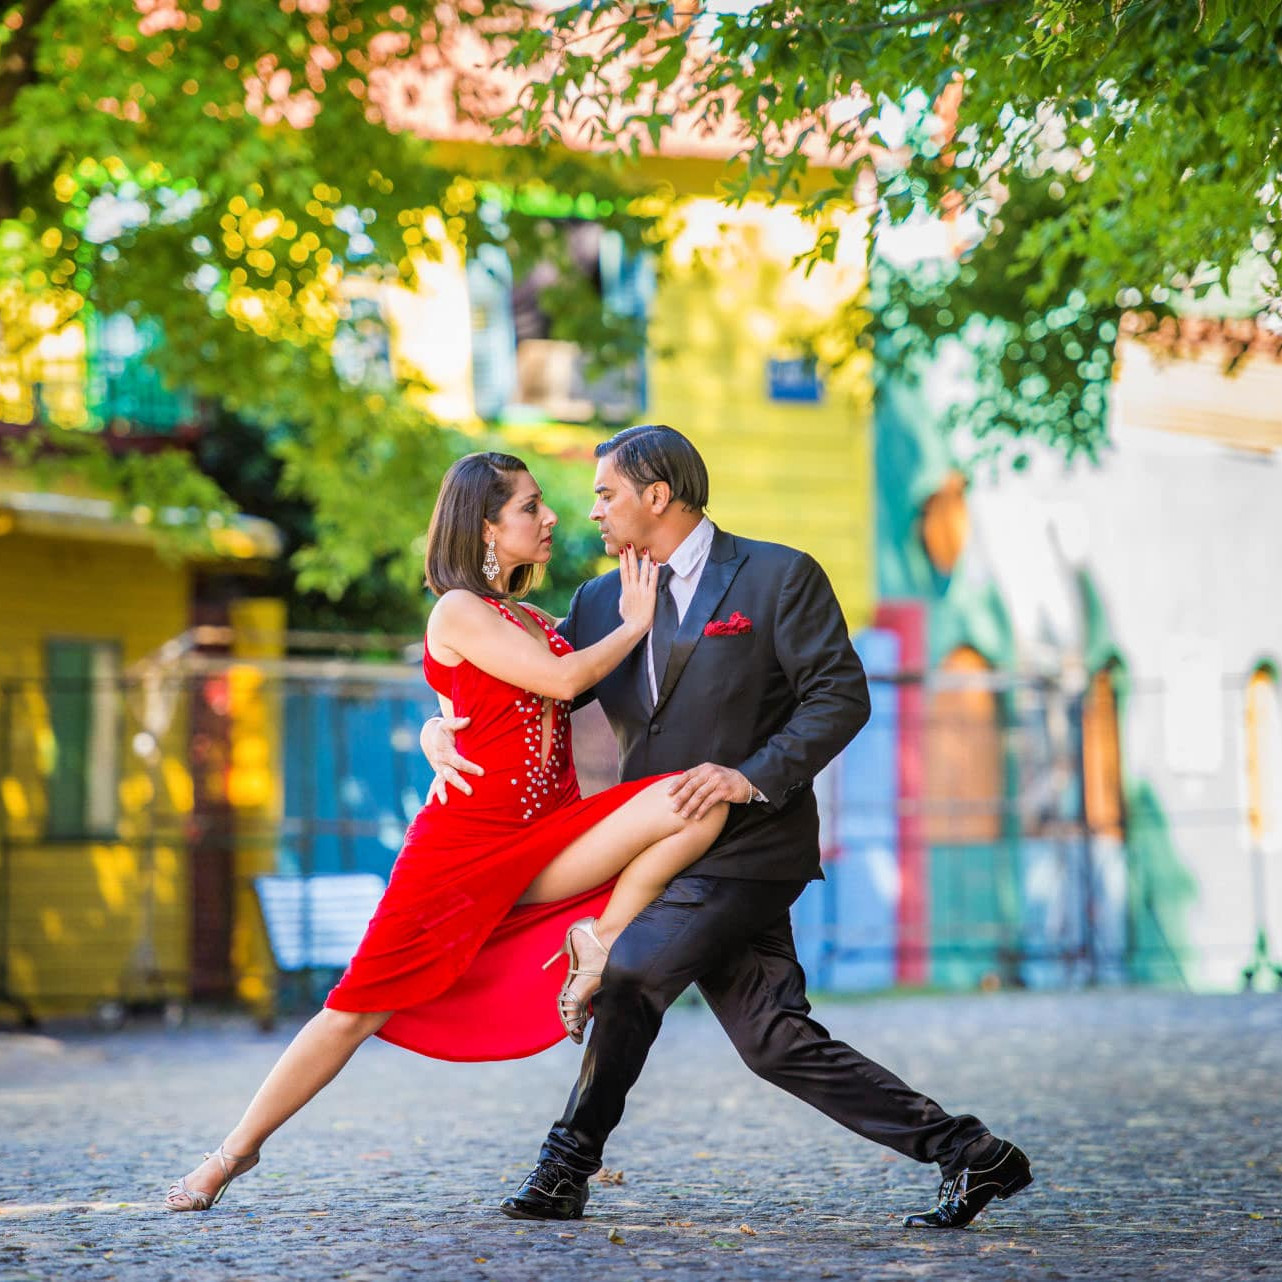 Tango Argentina South America Travel Guide